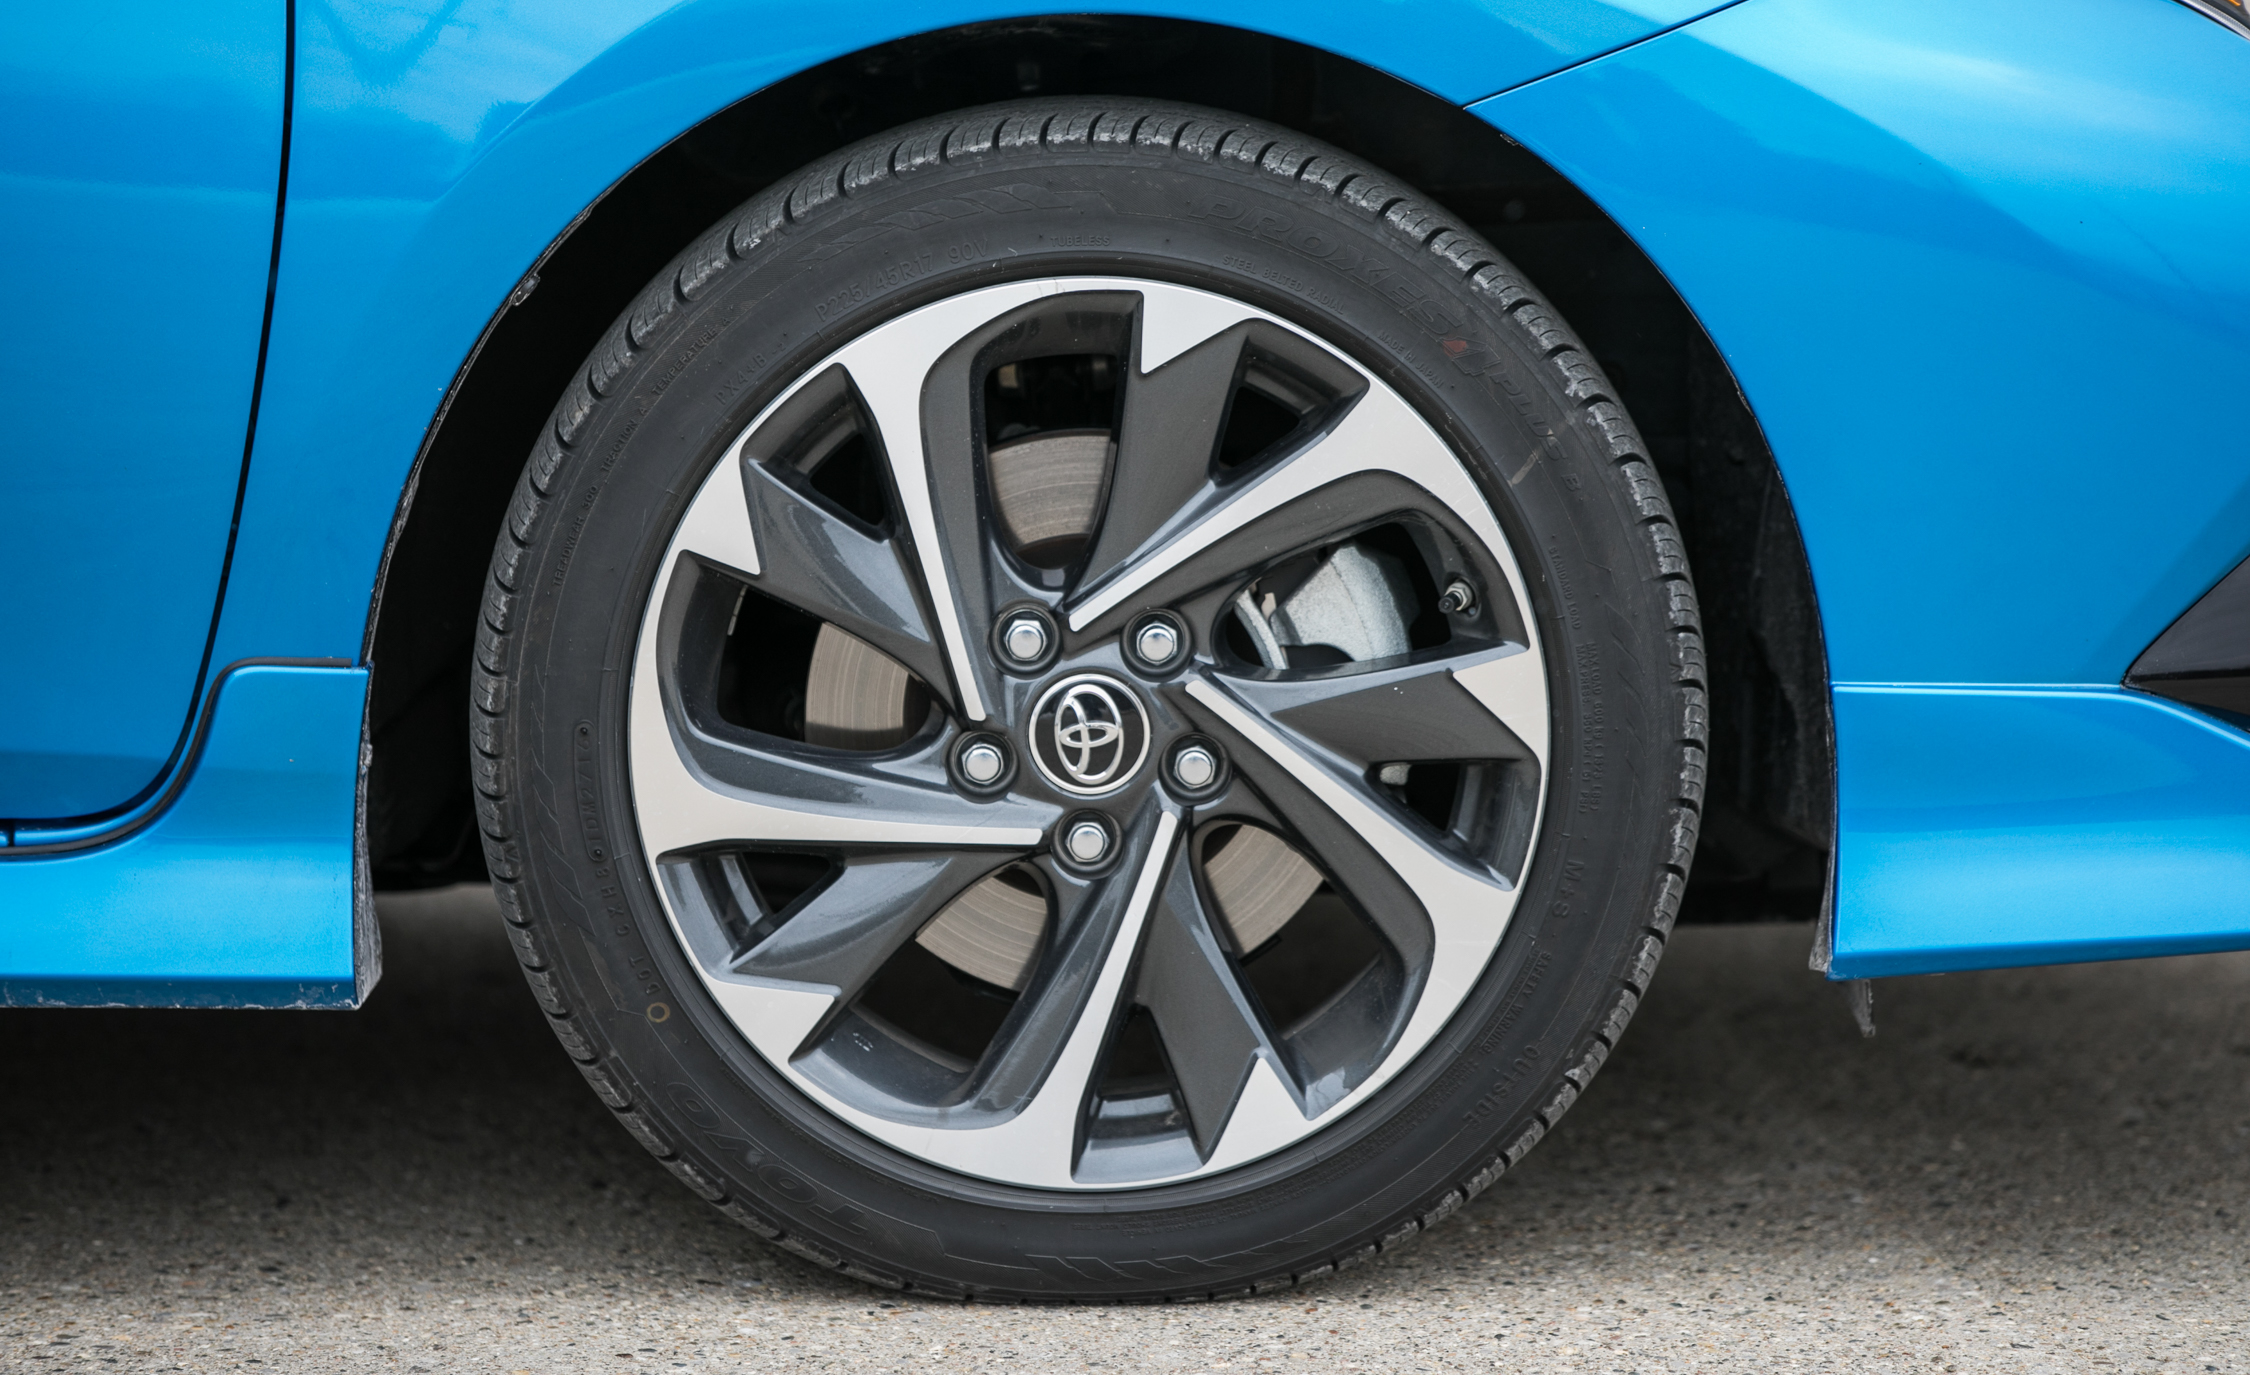 2017 Toyota Corolla IM Hatchback Exterior View Wheel Velg (Photo 21 of 52)